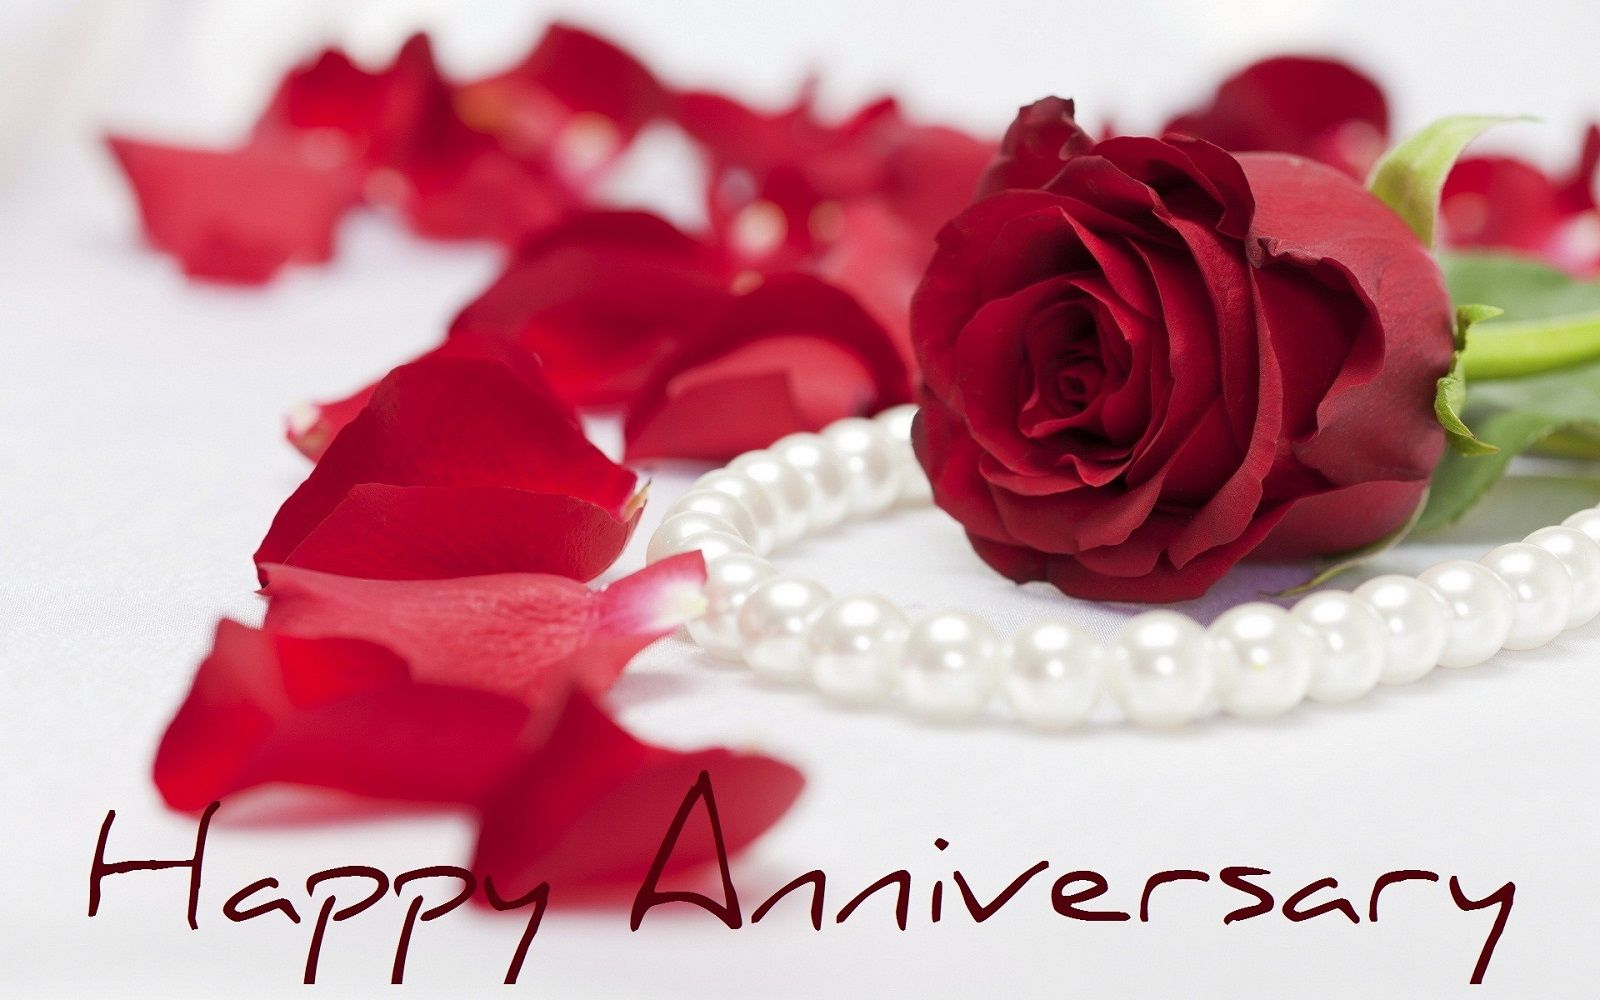 Happy anniversary greetings for husband wife or couple happy